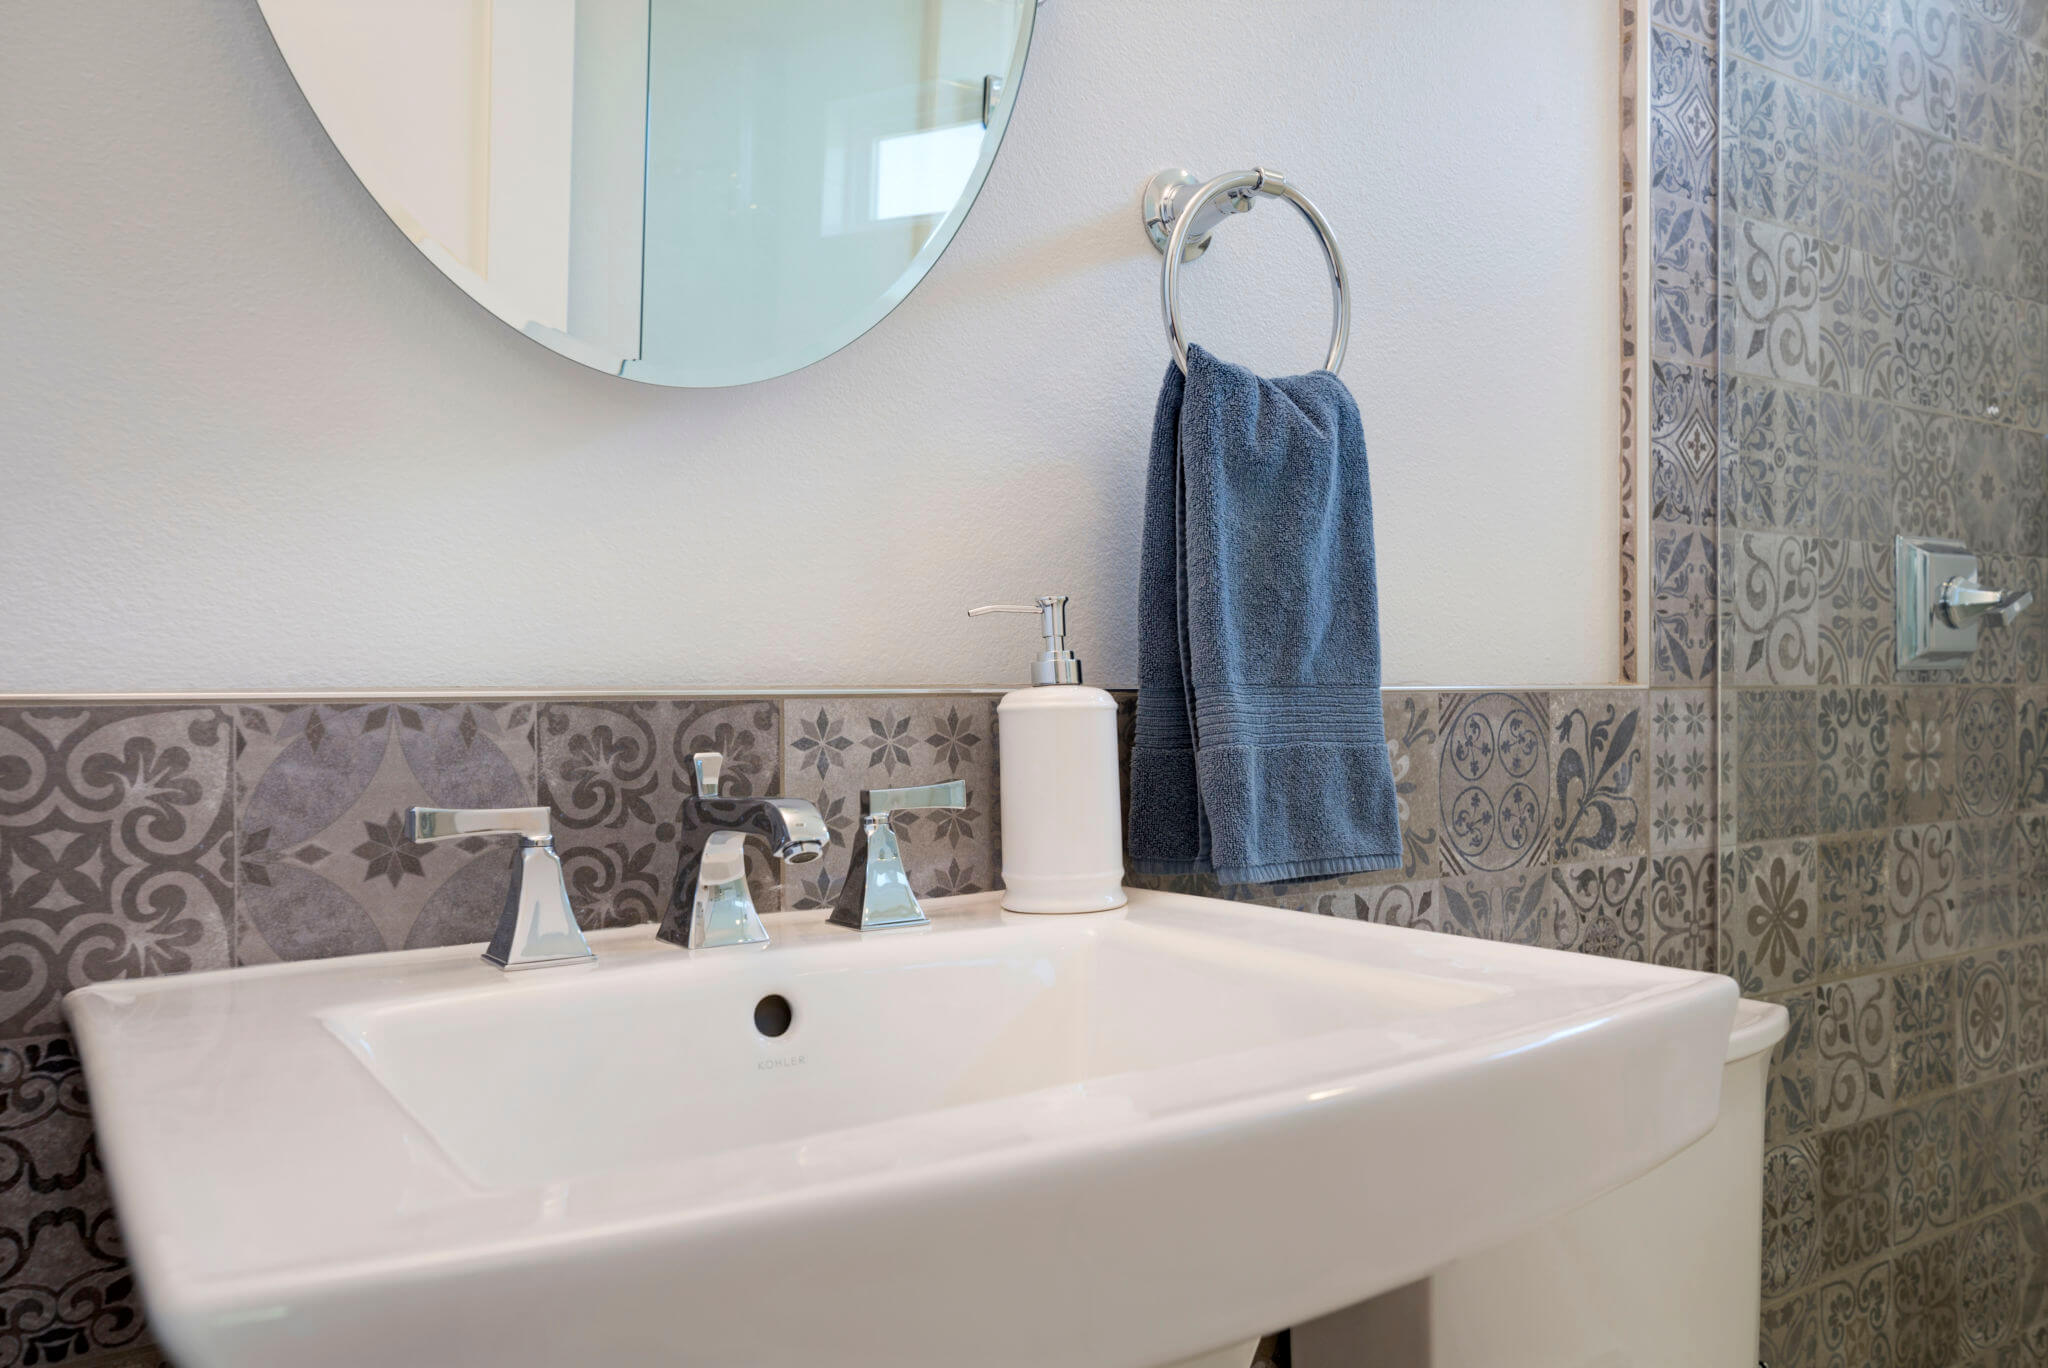 concrete looking Spanish style tile in bathroom remodel